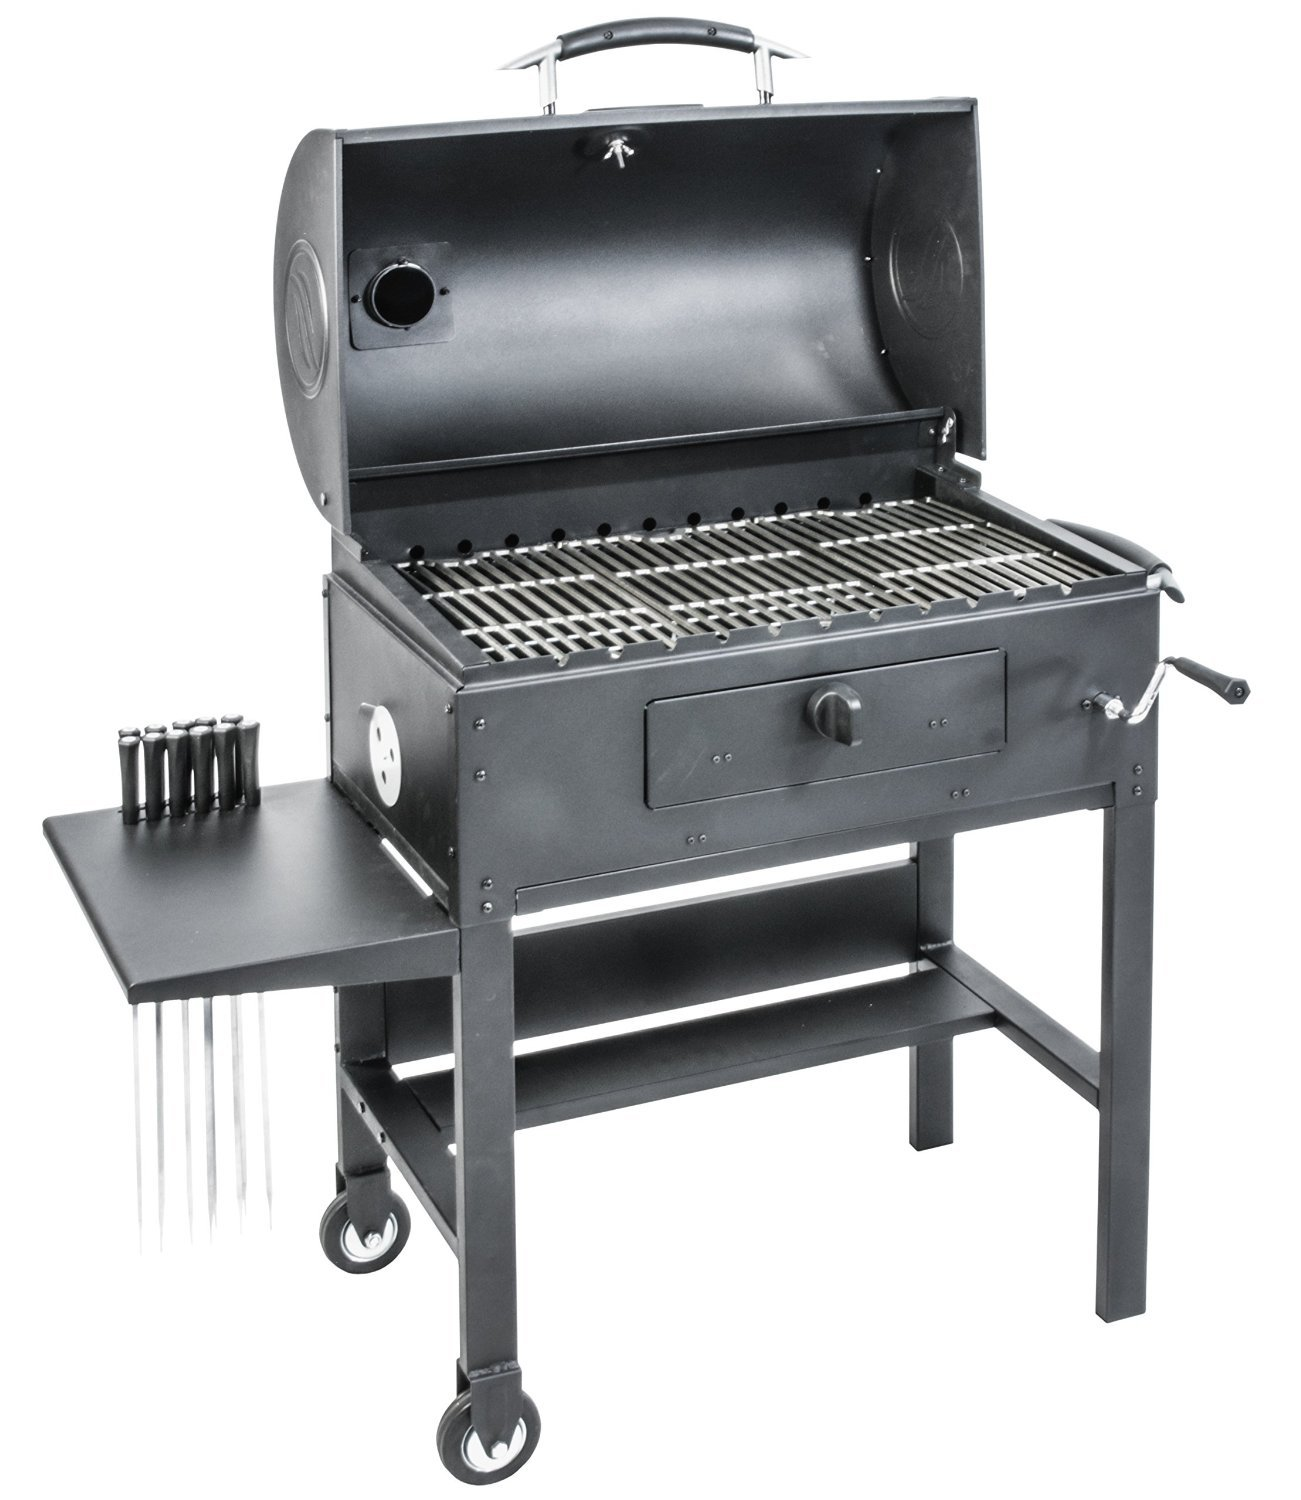 Blackstone 3-in-1 Kabob Charcoal Grill - Barbecue - Smoker - With Automatic Rotisserie - 11 custom heavy-duty skewers included by Blackstone